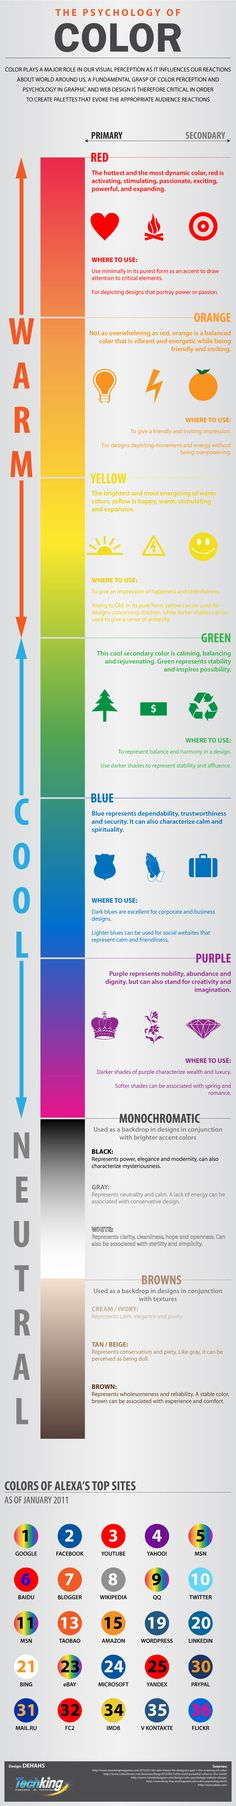 Psychology of colors- I have studied this theory many years ago and I practice it in my design. Concept Candie Interiors offers virtual interior design services